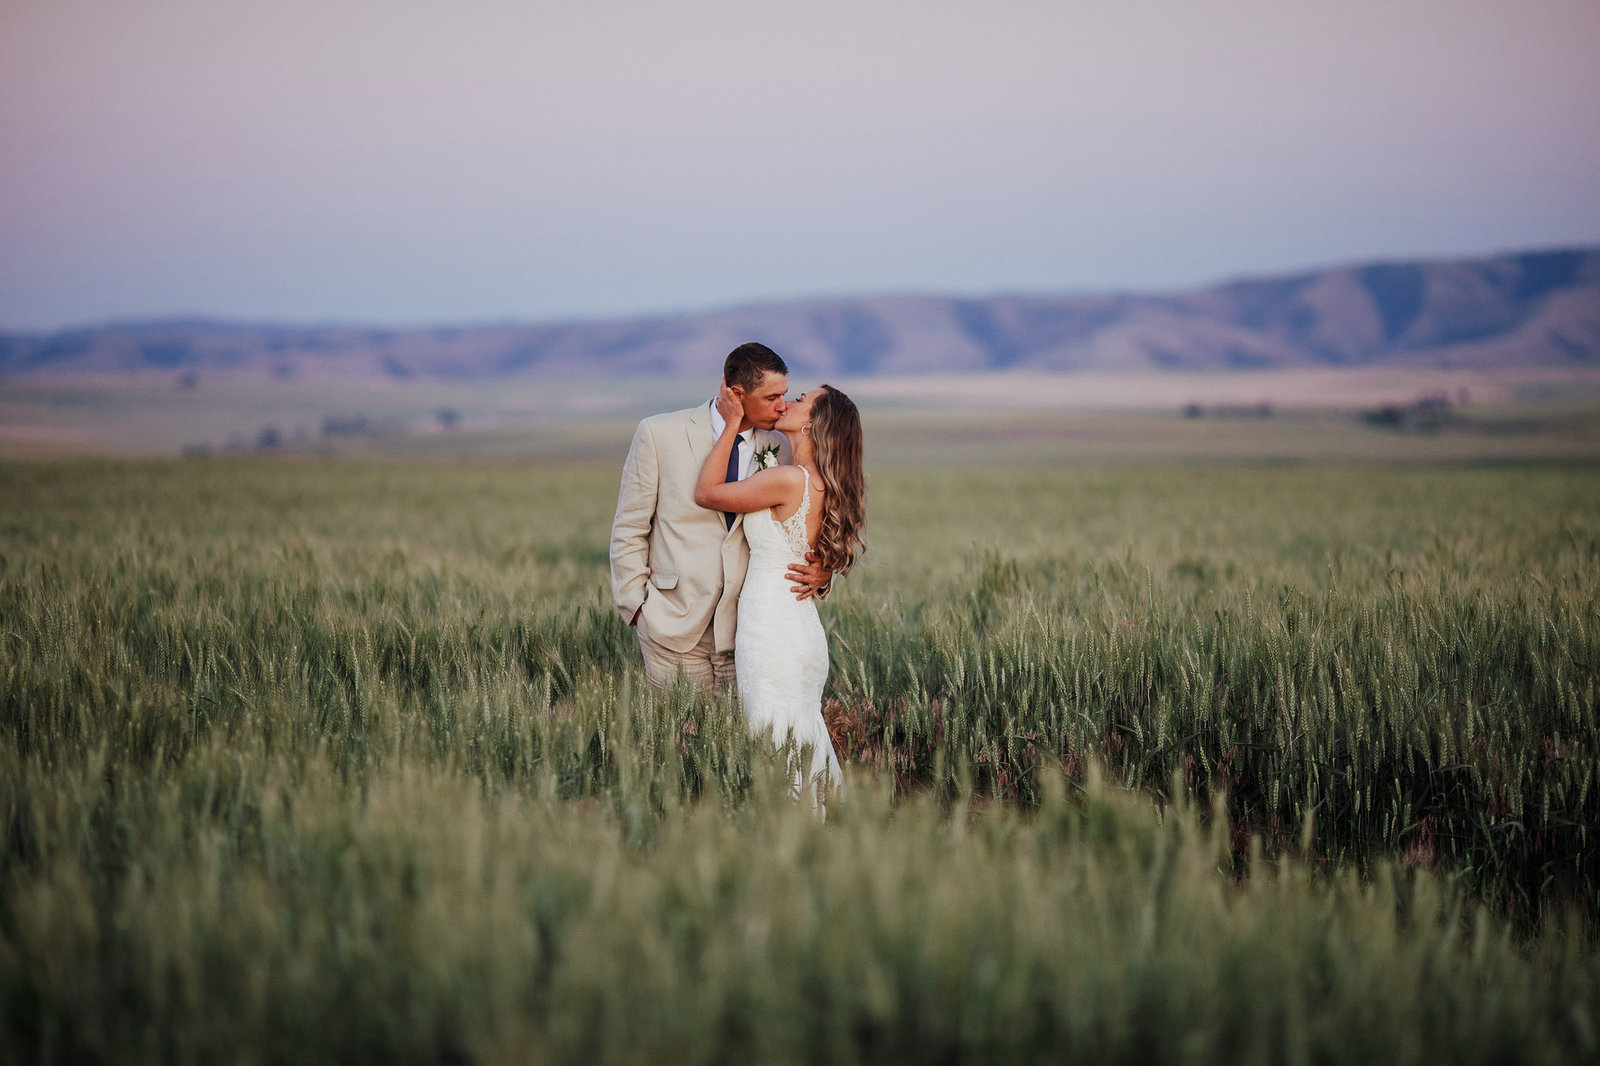 Wheat-Field-Bride-Groom-Western-Wedding